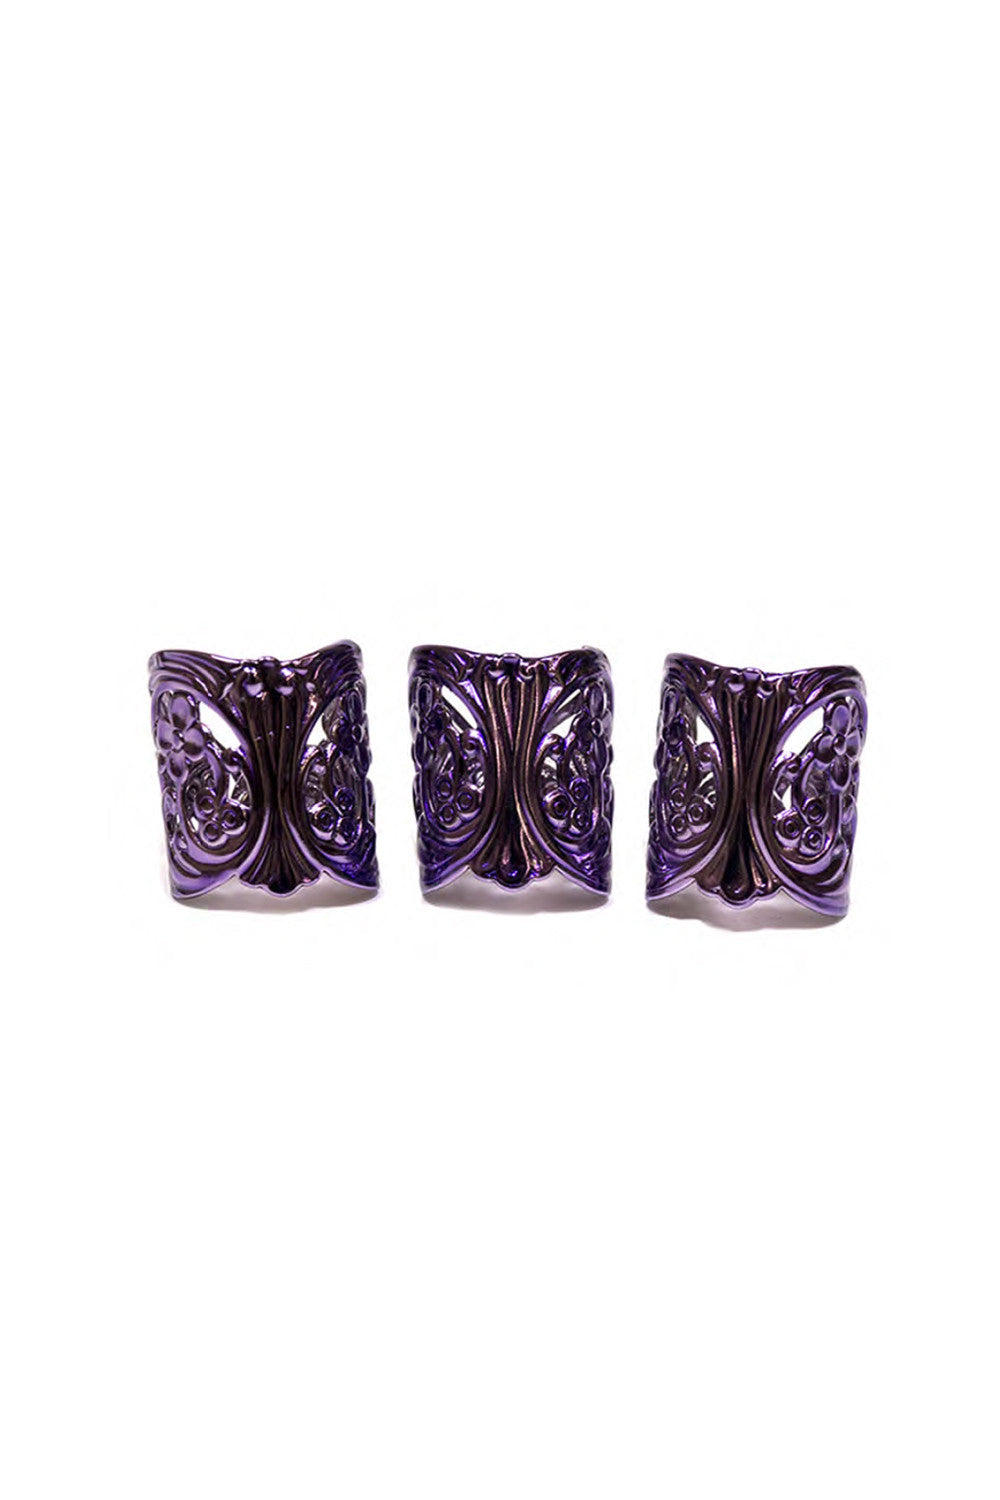 LACED CUFF RINGS IN LAVENDAR (SET OF 3)